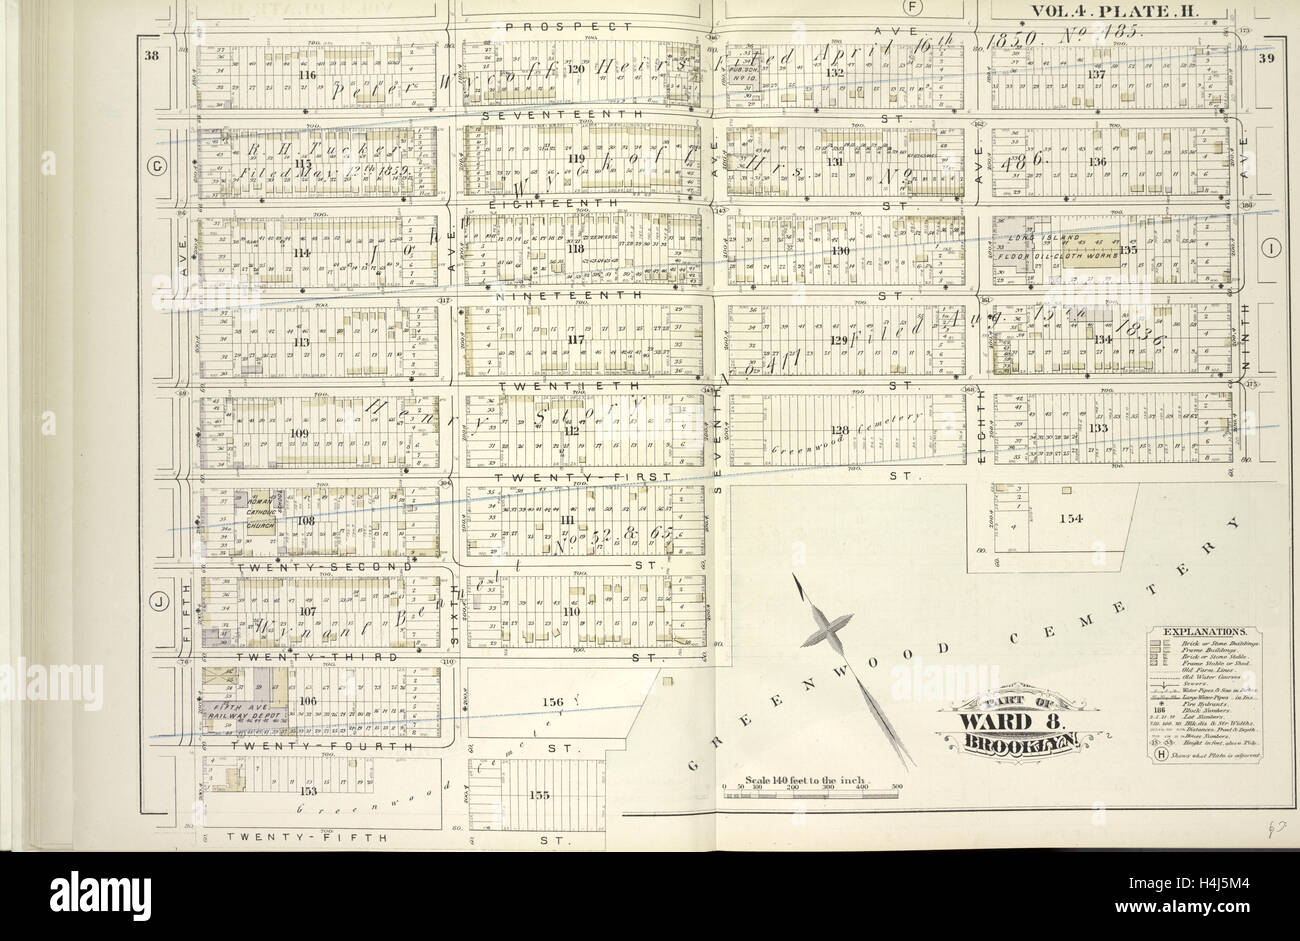 vol  plate h map bound by prospect ave ninth ave  - plate h map bound by prospect ave ninth ave greenwood cemeterytwentyfifth st fifth ave